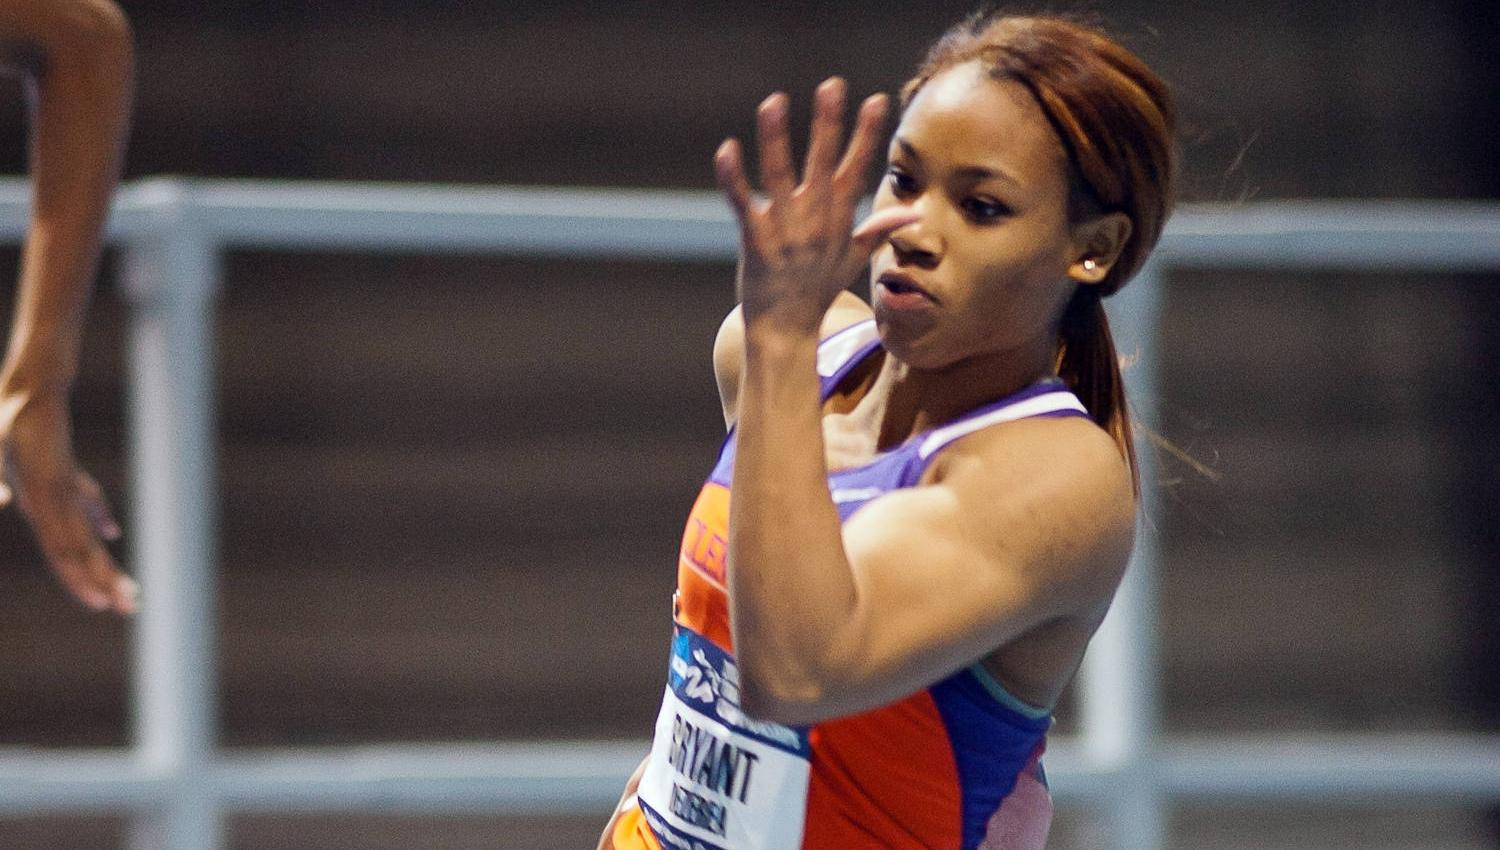 Clemson's Bryant Wins Two Medals at IAAF World Junior Track & Field Championships